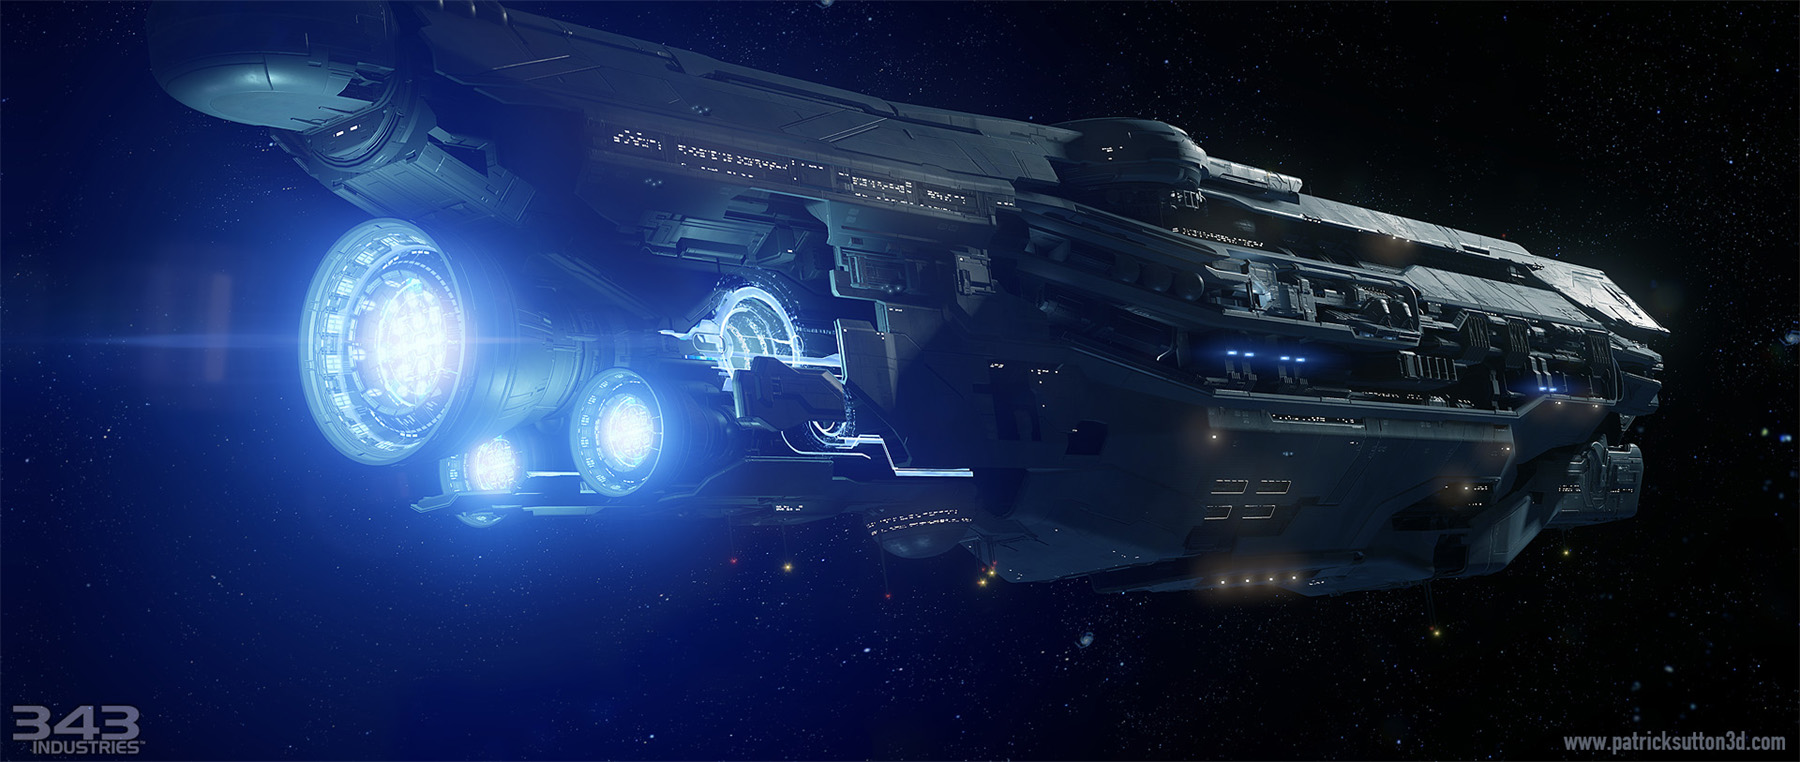 Mass Effect Fall Wallpaper Concept Ships Unsc Infinity By Patrick Sutton